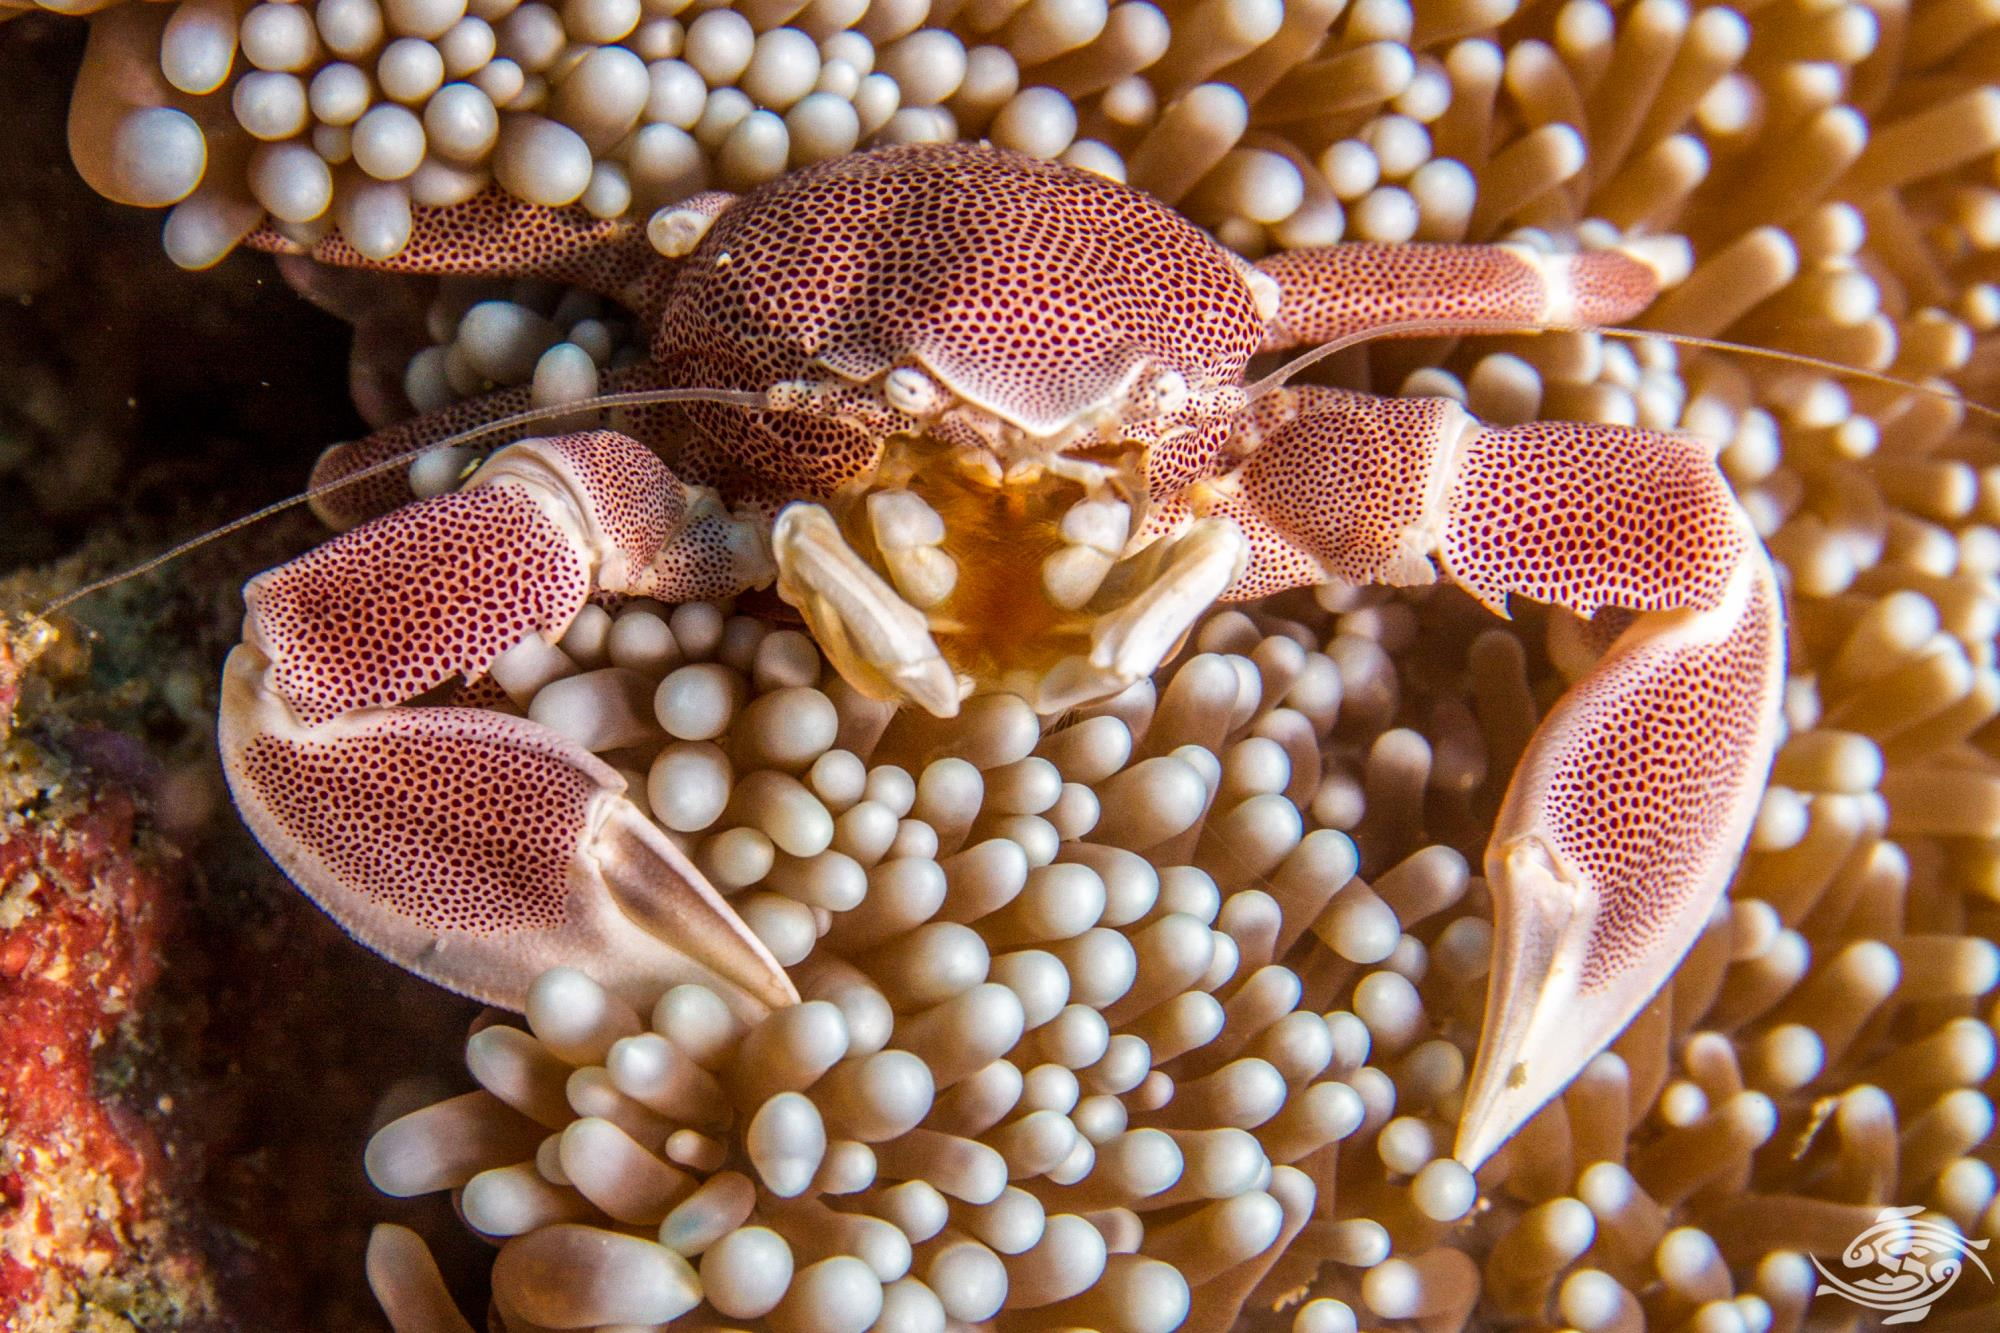 Porcelain Anemone Crab, Neopetrolisthes maculatus is also known